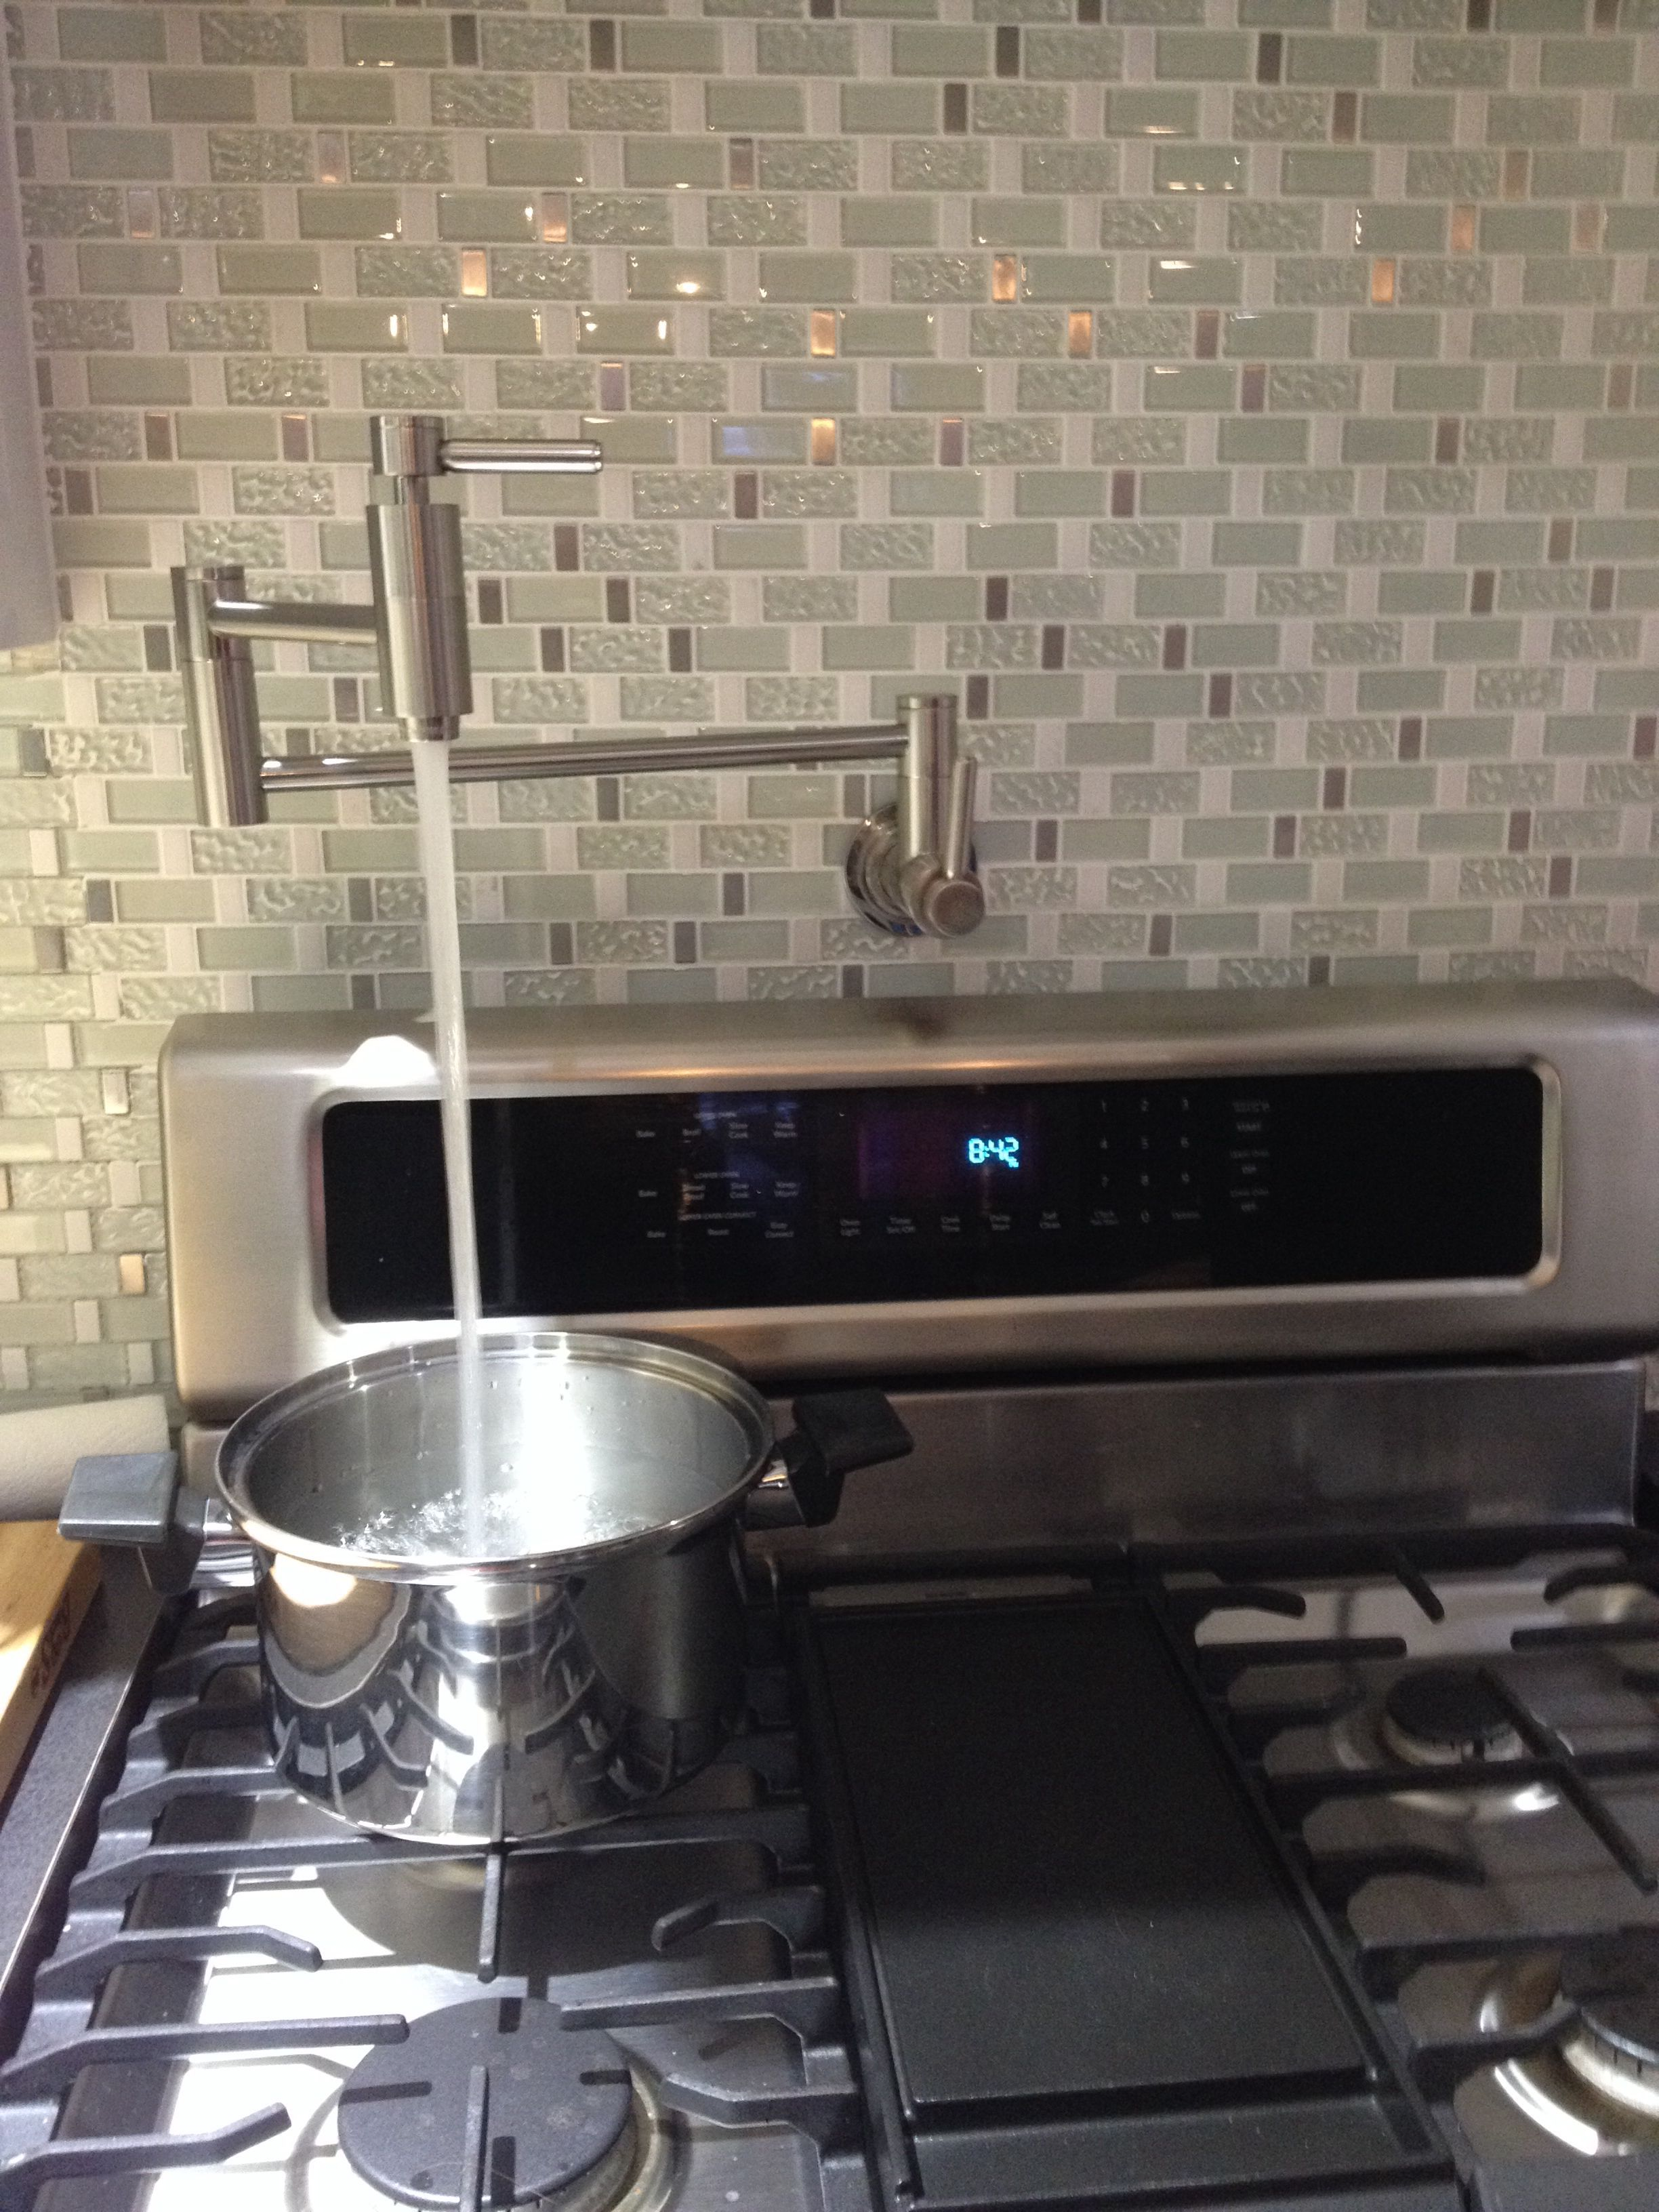 Water Faucet Over Stove Kitchen Ideals Pot Filler Kitchen Diy